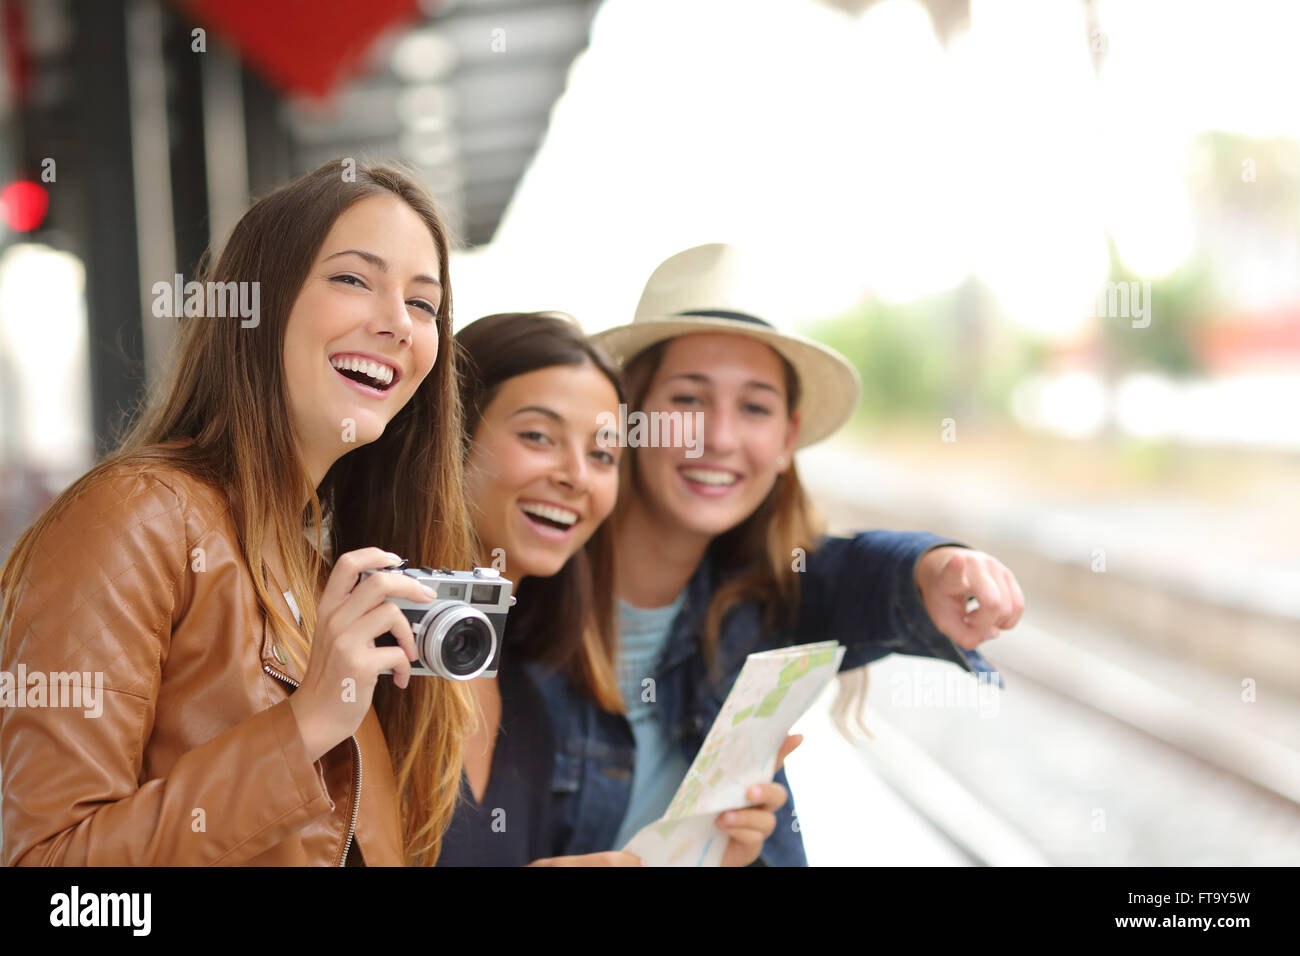 Group of three traveler girls traveling and waiting in a train station platform - Stock Image